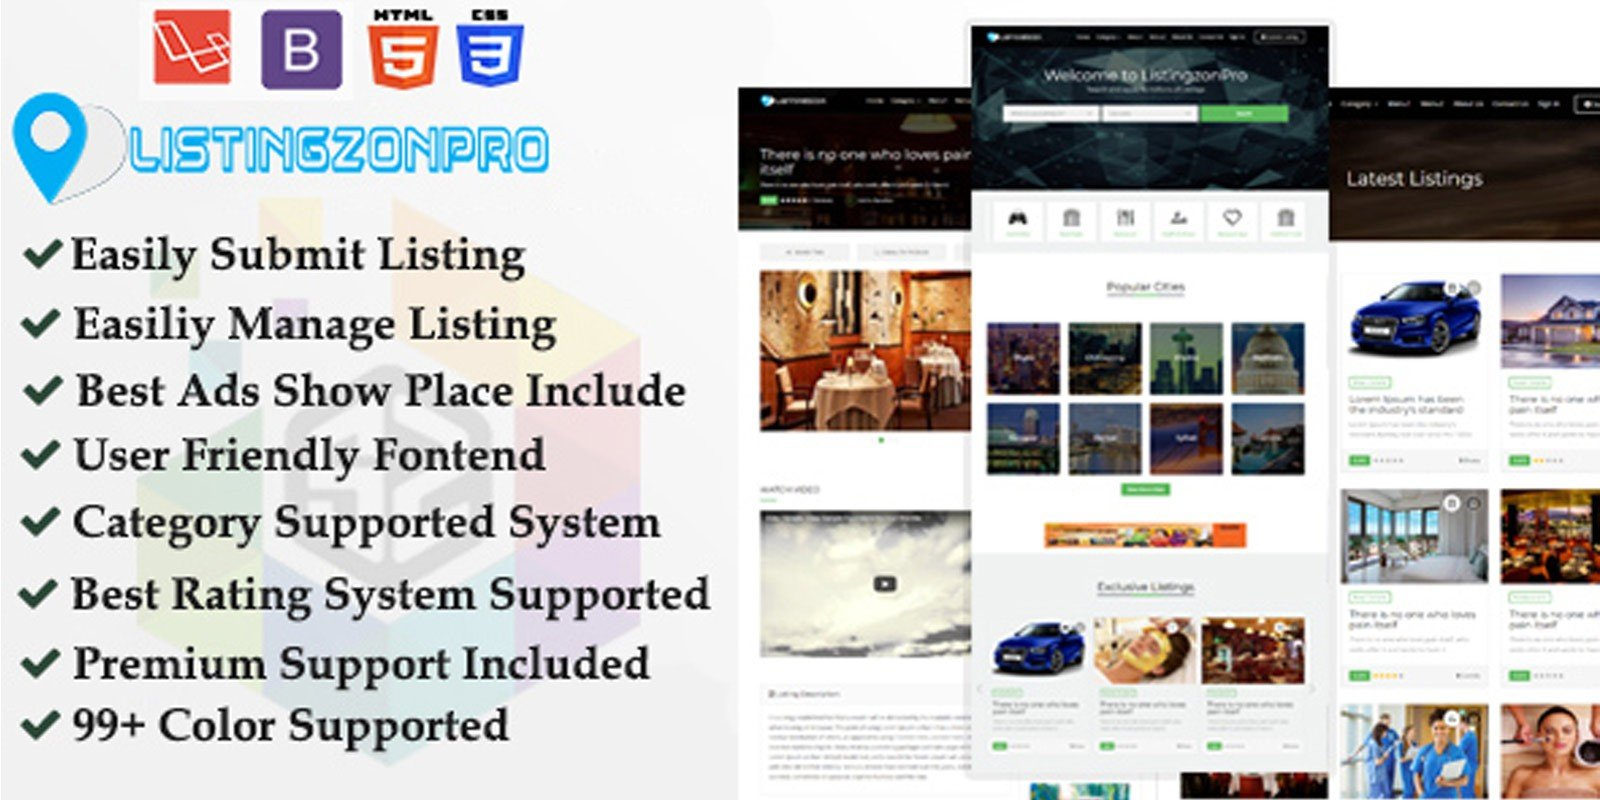 ListingzonPro - Classified Ads Listing Directory